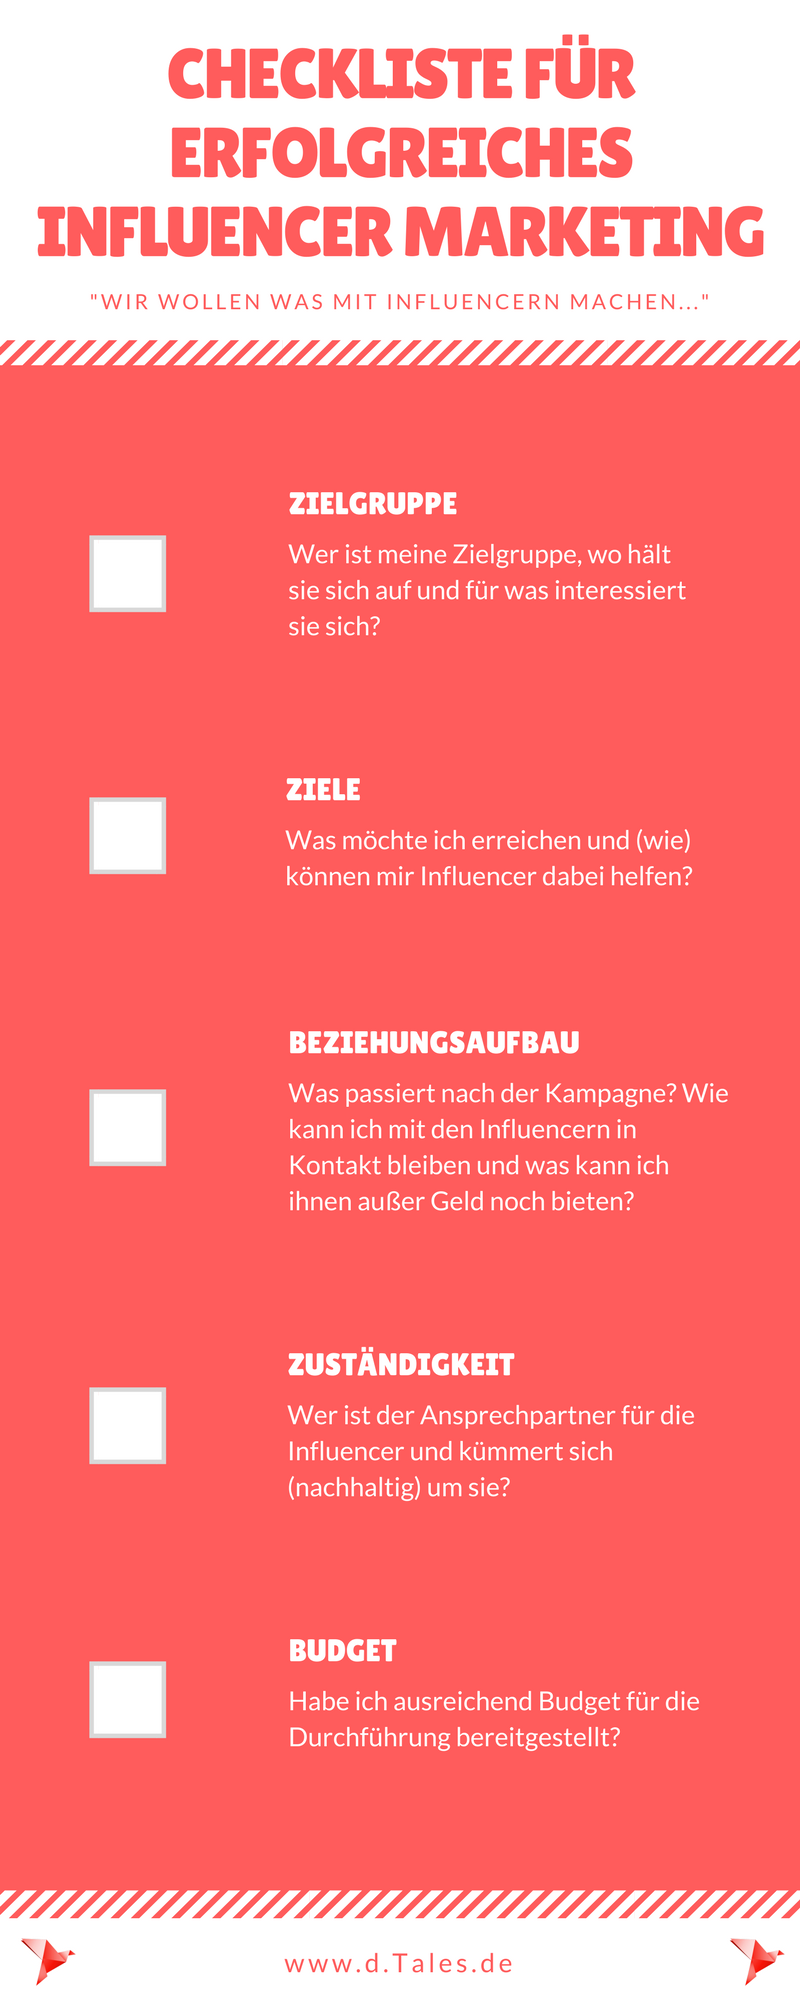 Infografik Checkliste für Influencer Marketing